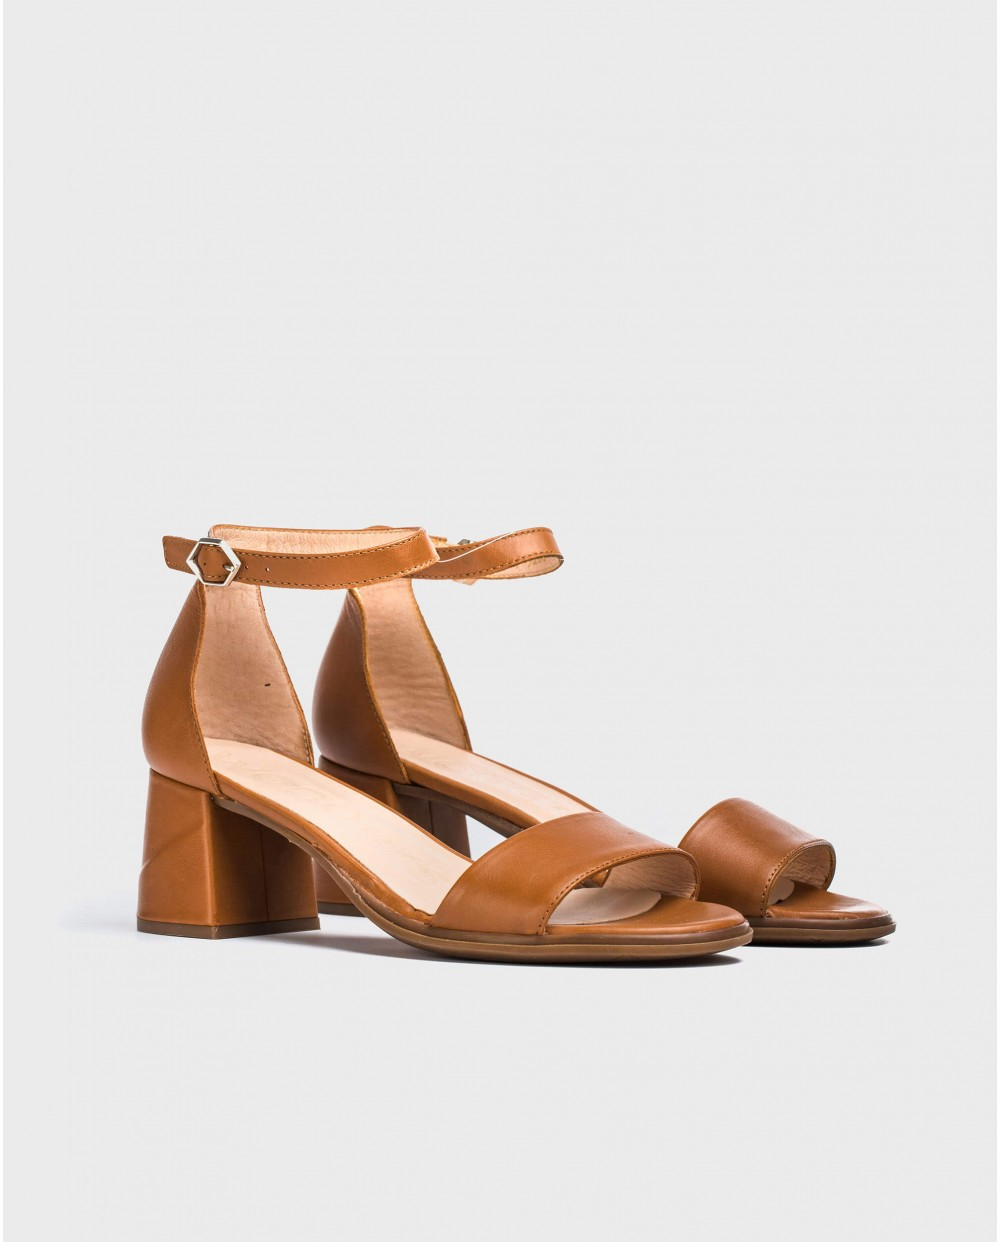 Wonders-Sandals-Leather sandal with square heel